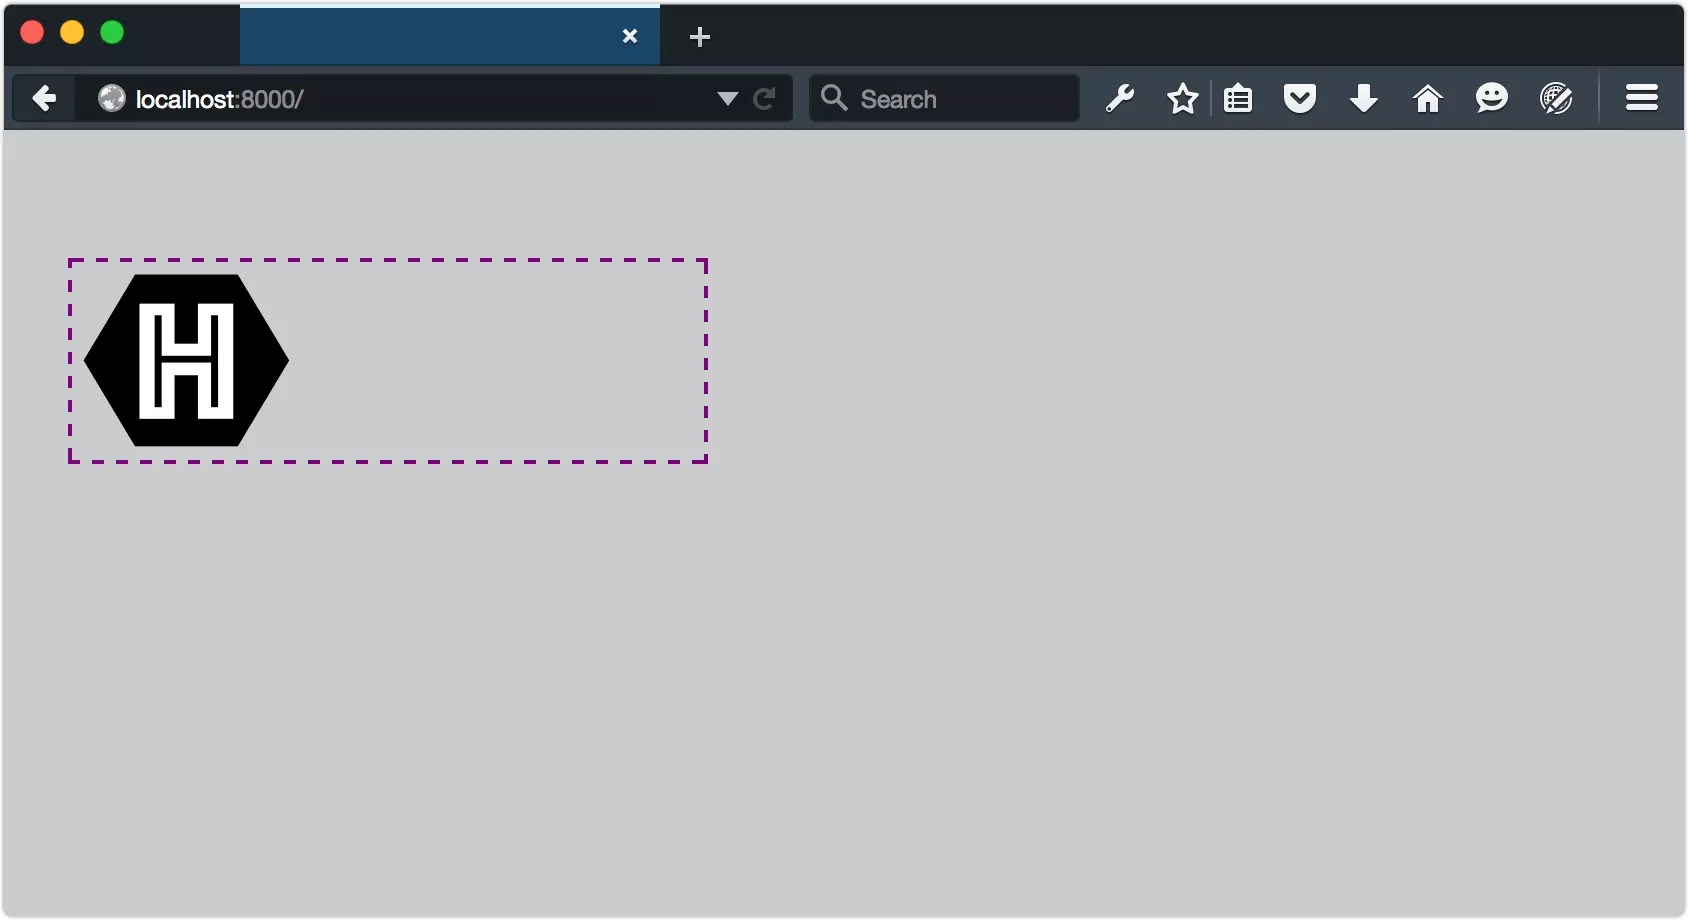 Showing/hiding elements based on the SVG viewport size